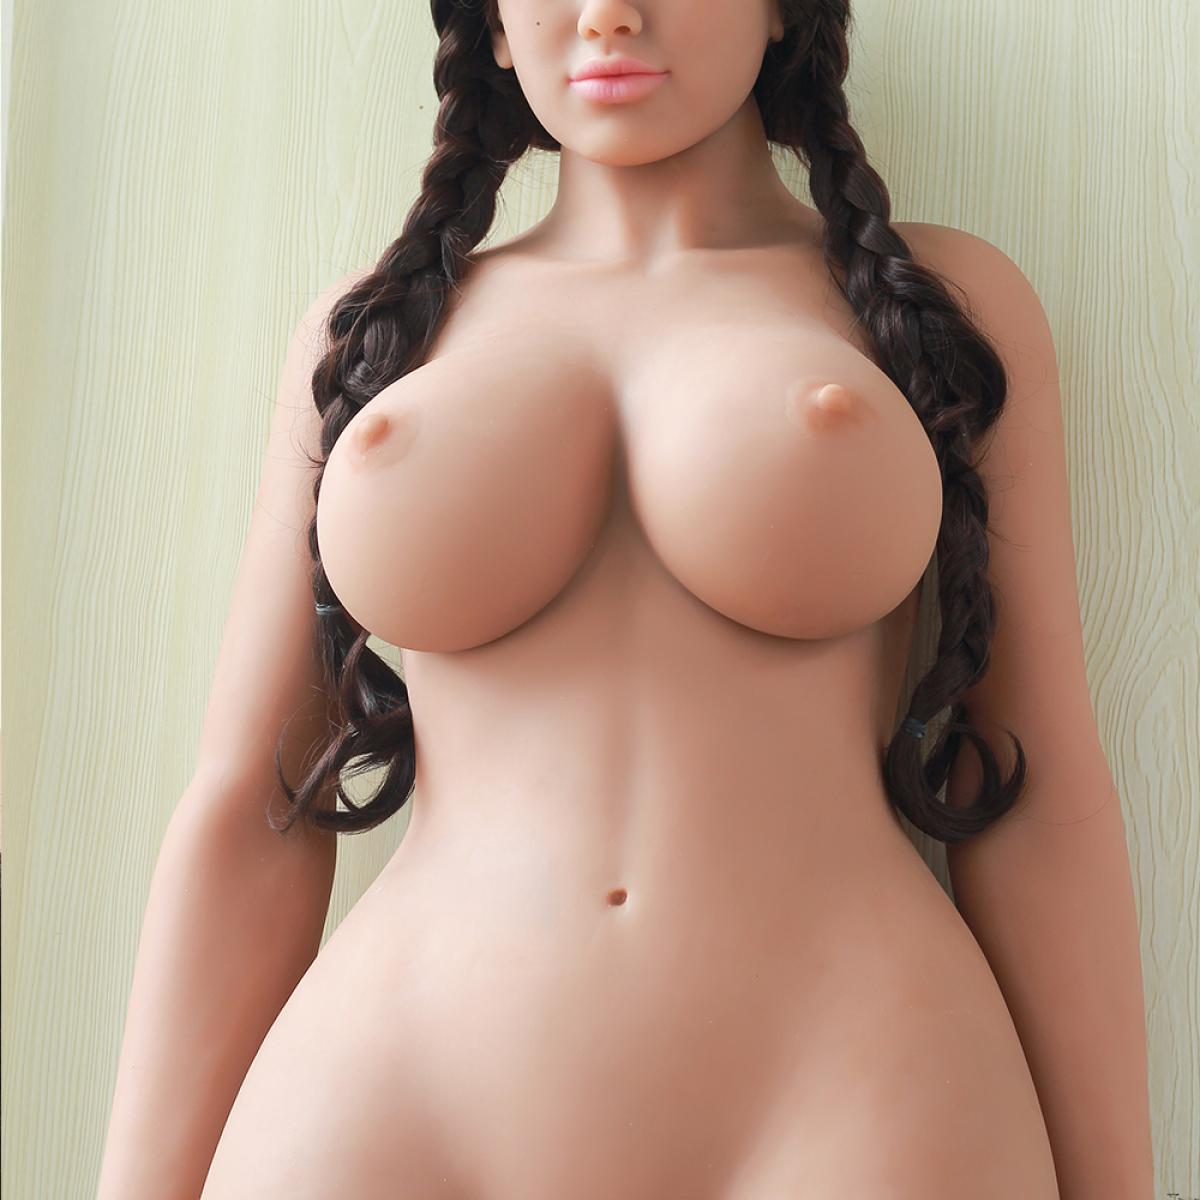 Leila 160cm by Jarliet for Neodoll - Realistic Sex Doll